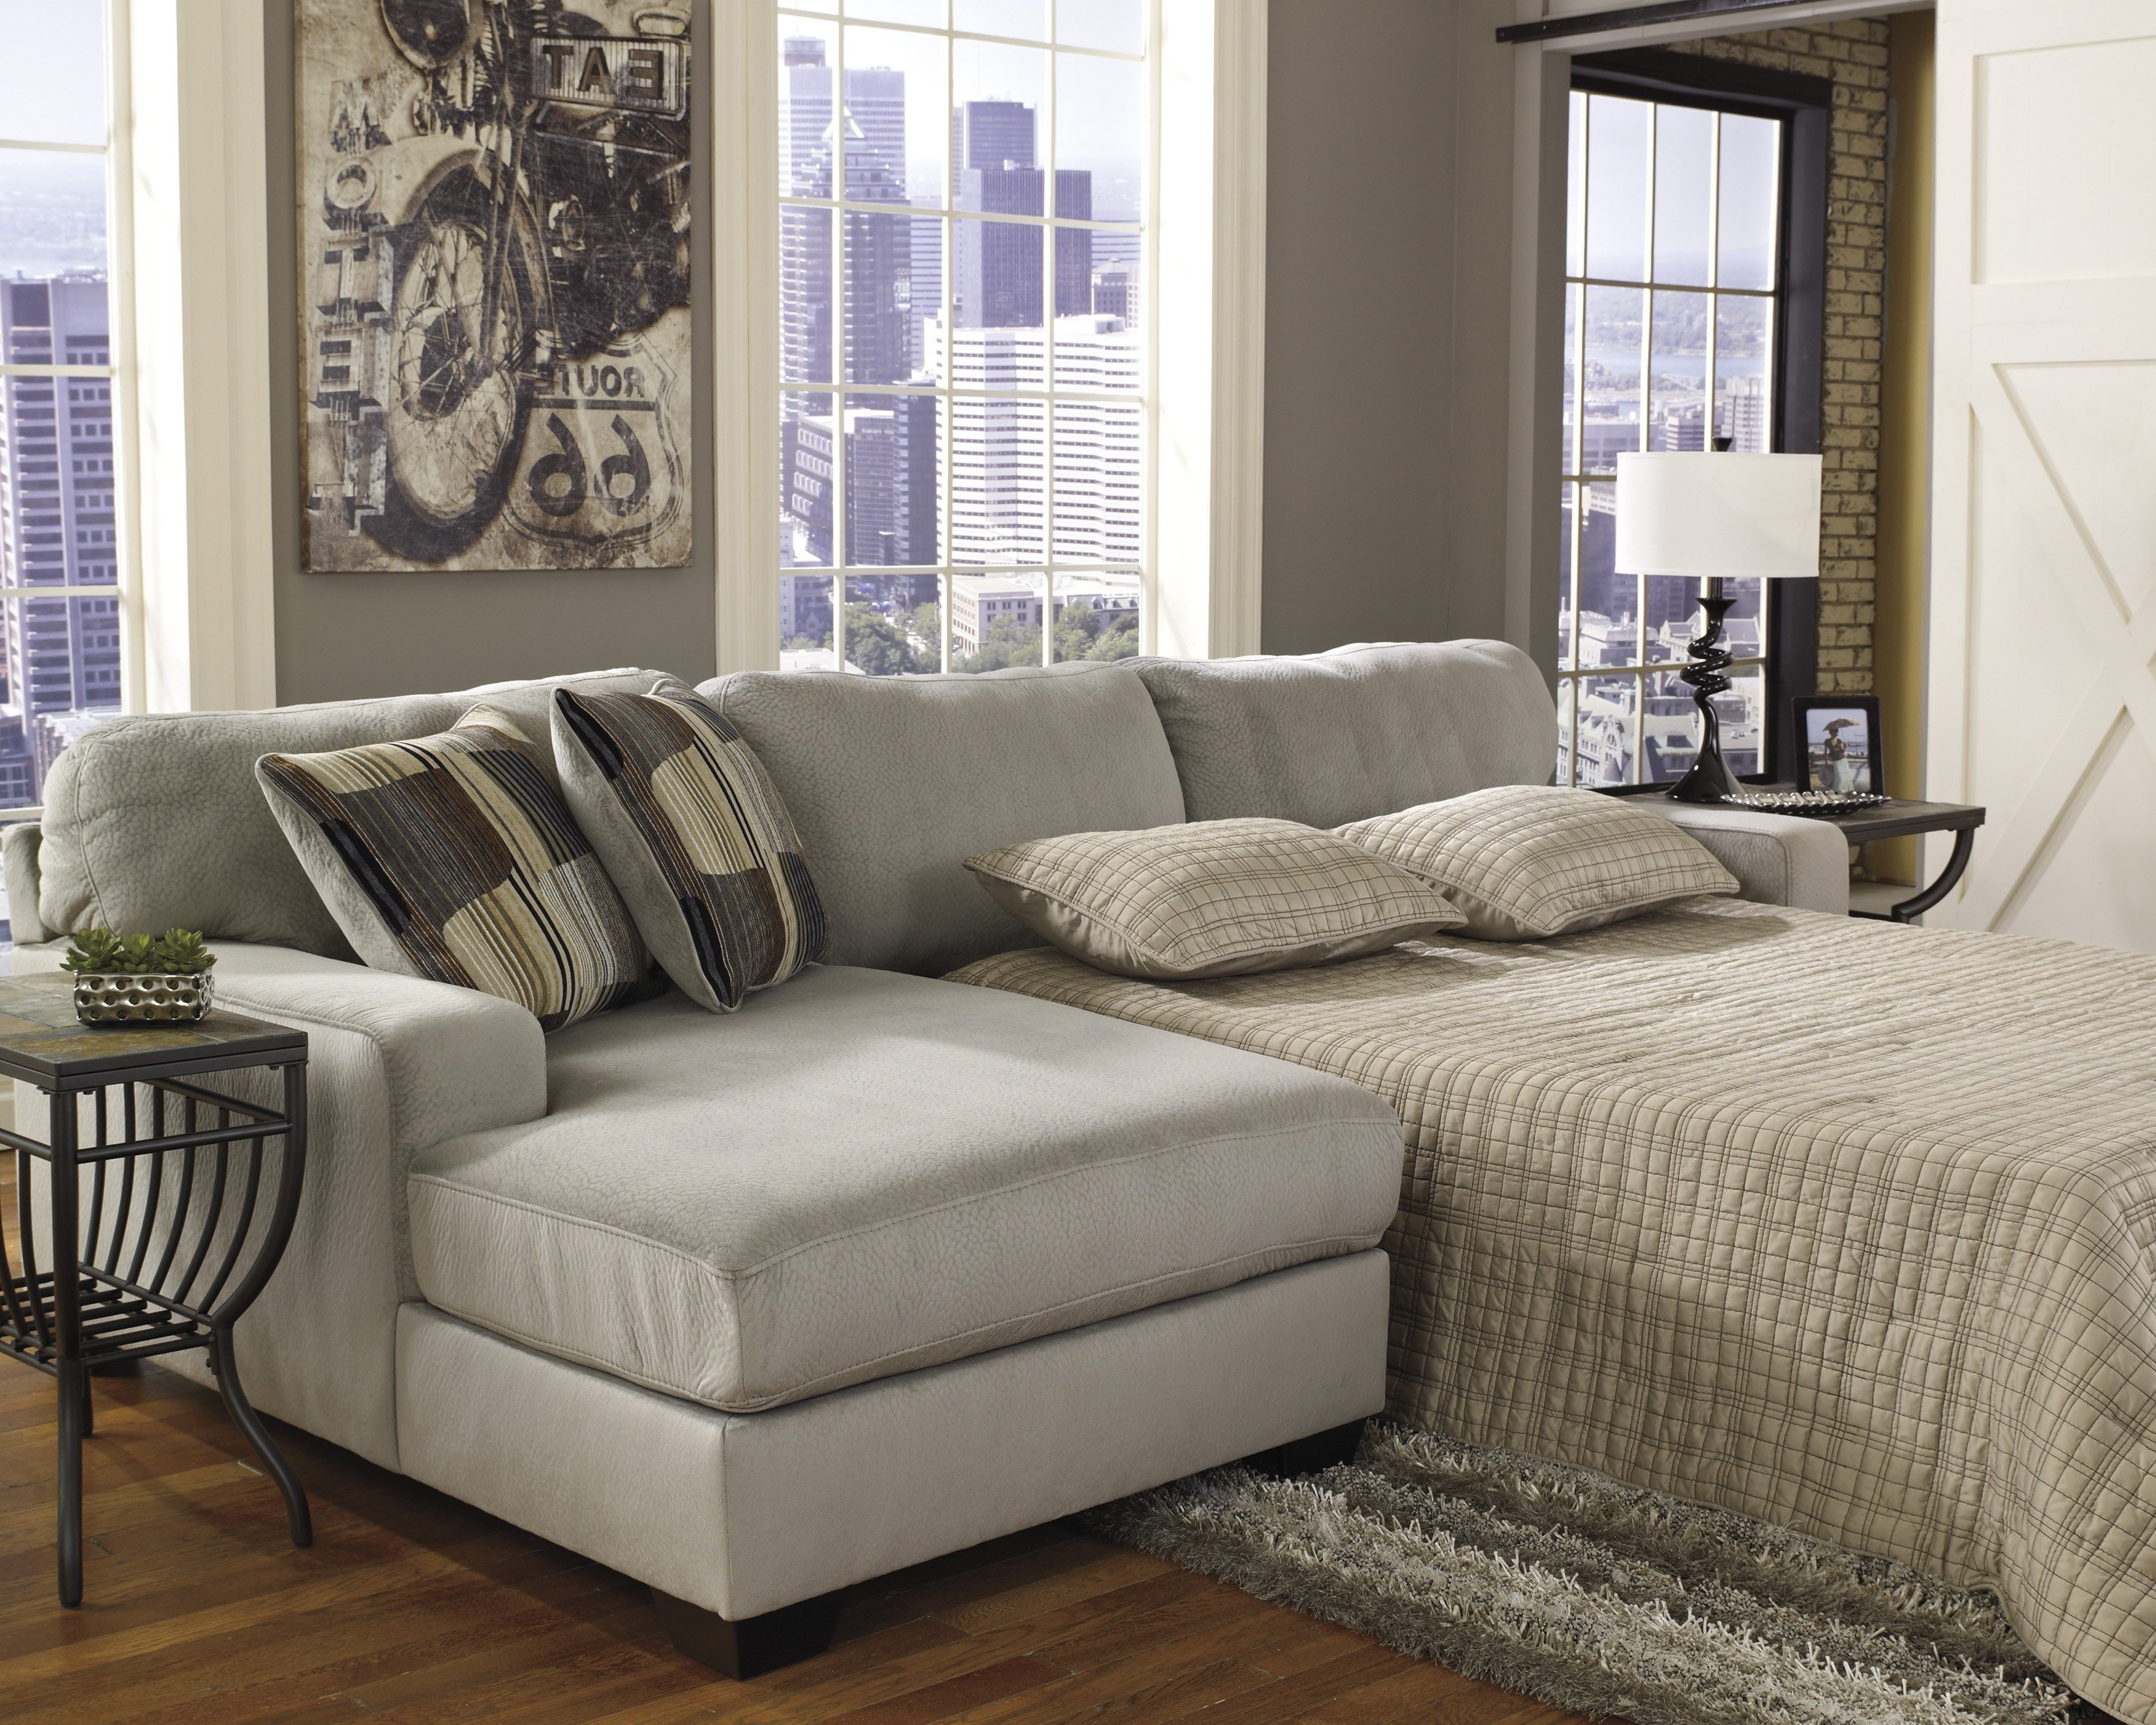 Most Comfortable Living Room Most fortable Living Room Chair